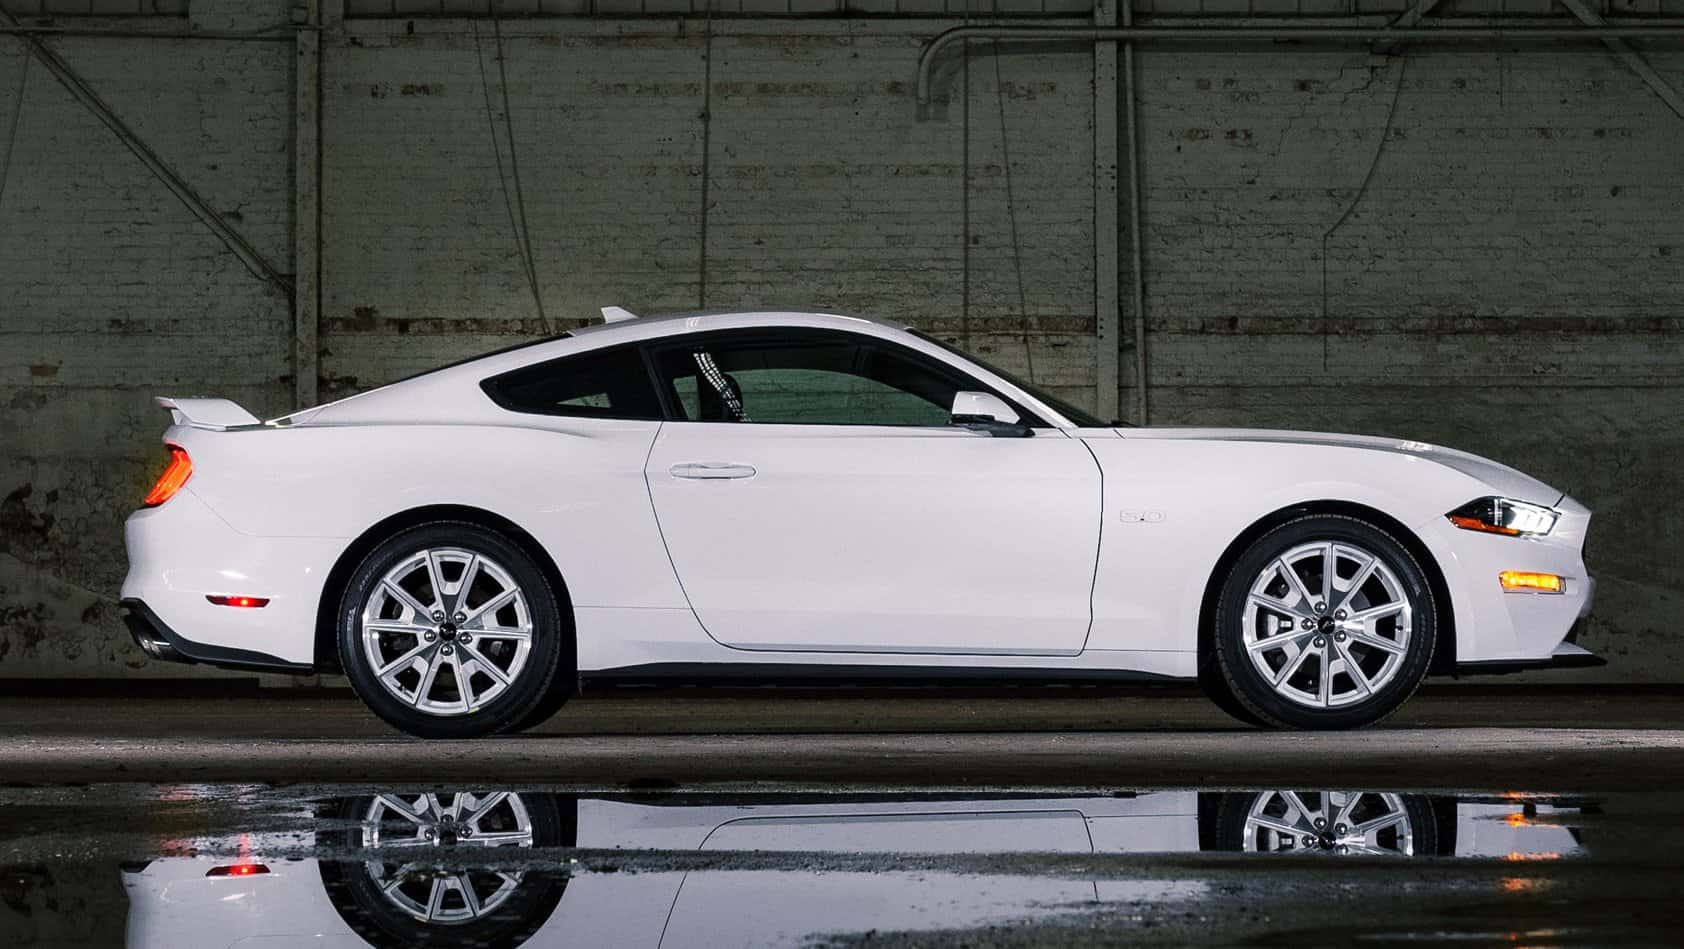 2022 Ford Mustang and Mustang Mach-E get white-on-white styling packs